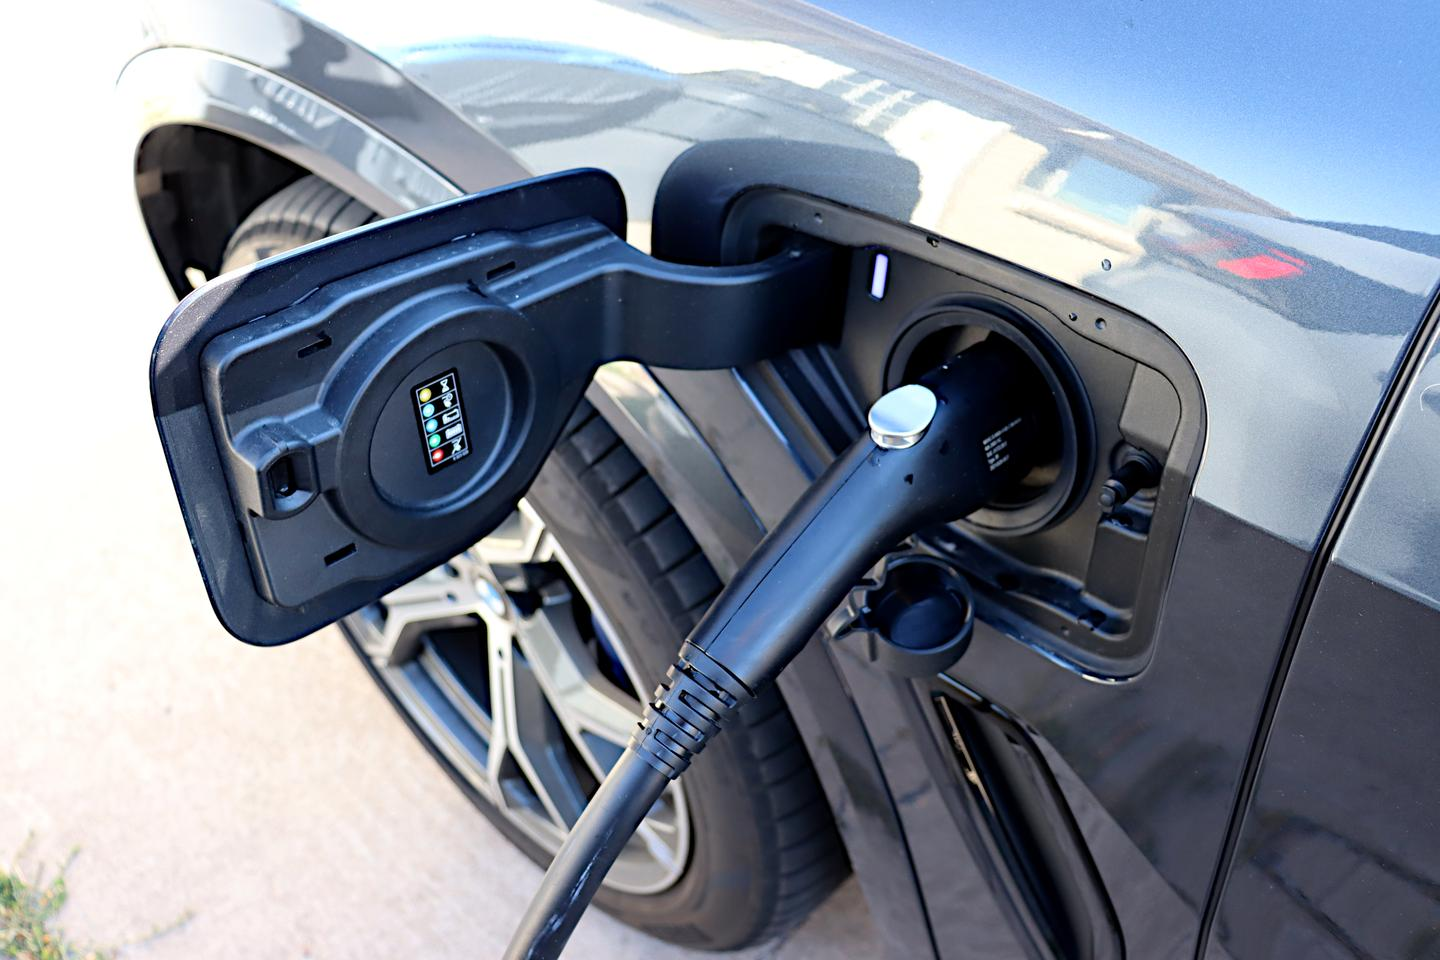 Not all EV charging is the same. Some electrified vehicles have limits to their charge input and some plugs can handle more power than others